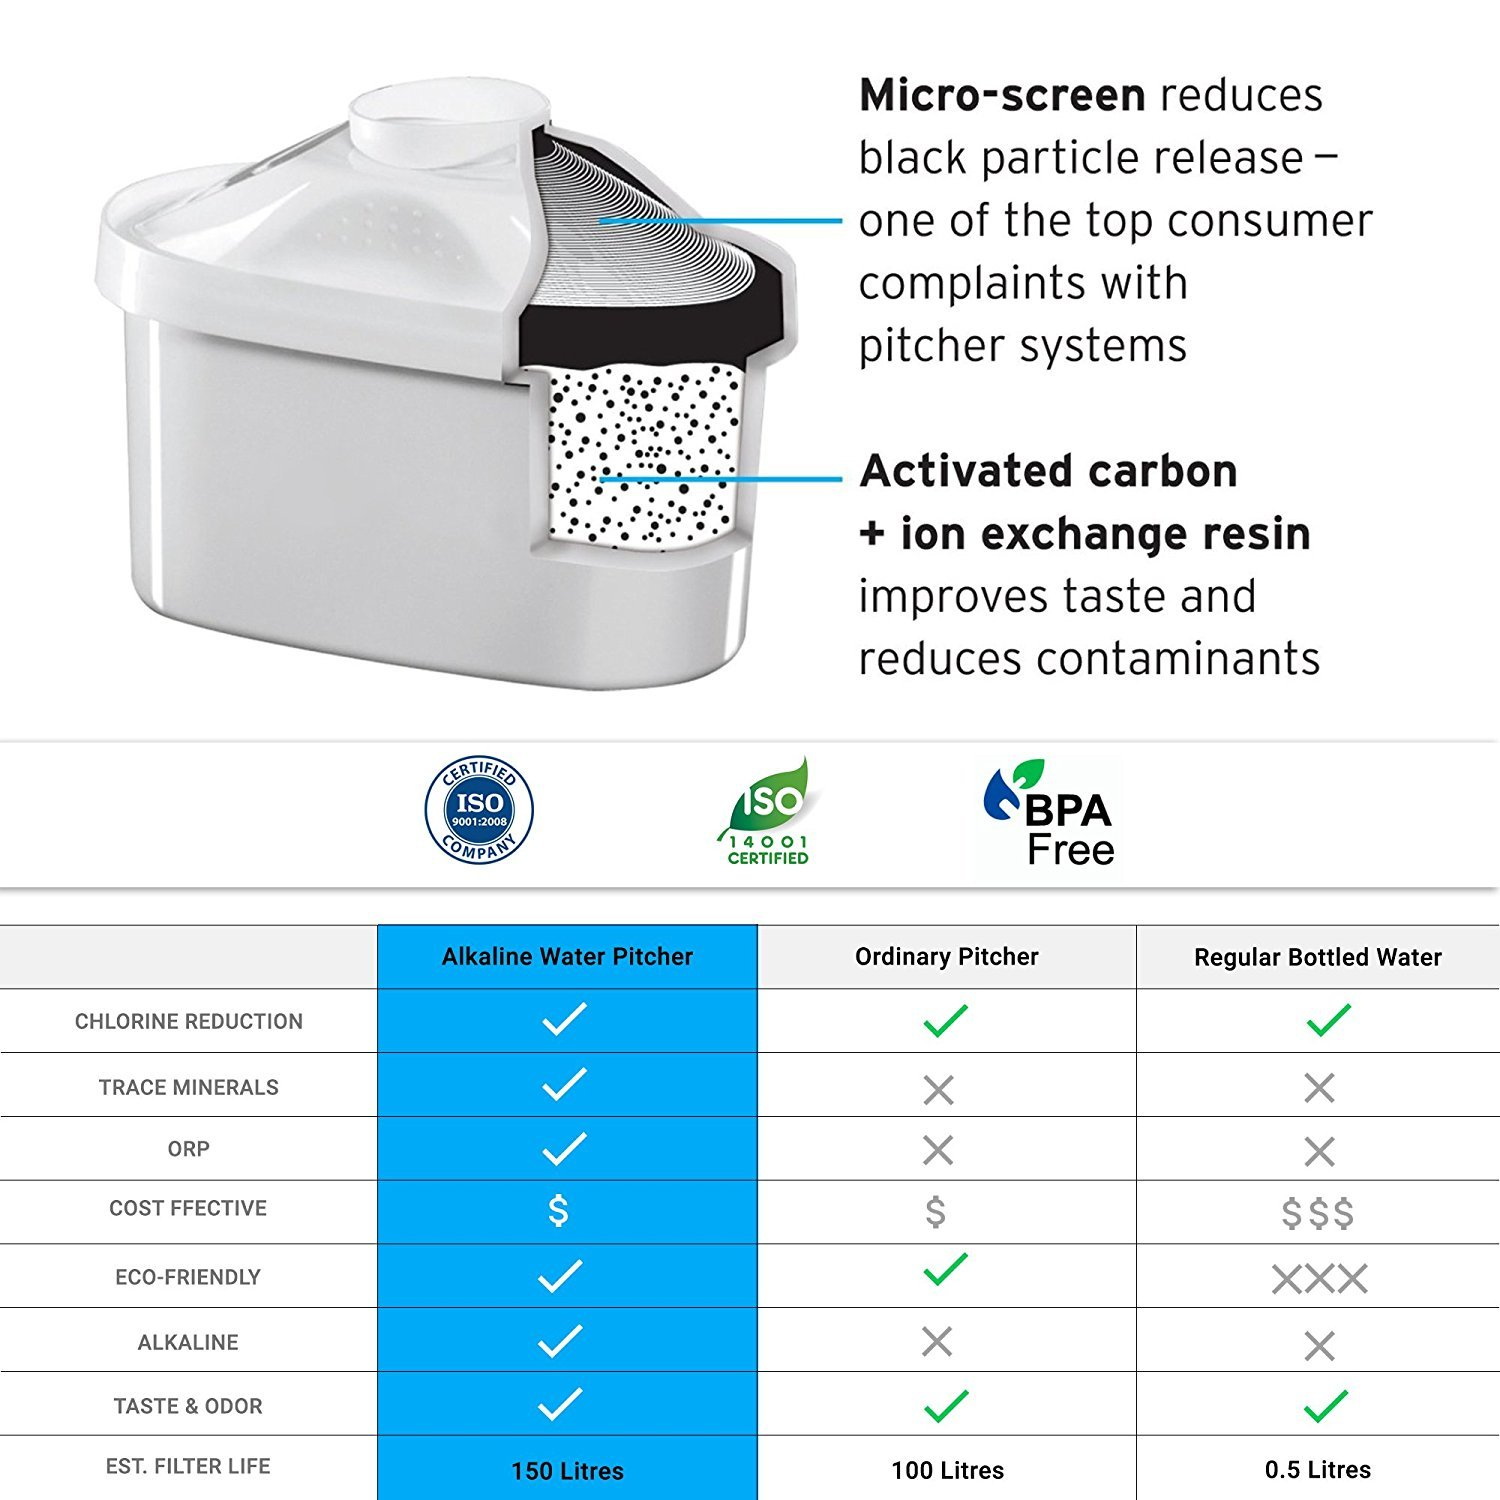 Vigorous Water Alkaline Replacement Filters for All Pitchers- Best Value (3 pack) 7 Stage Ionizer Filtration System To Purify and Increase PH Levels- Crisp, Clean, Refreshing Water Every Time (3)